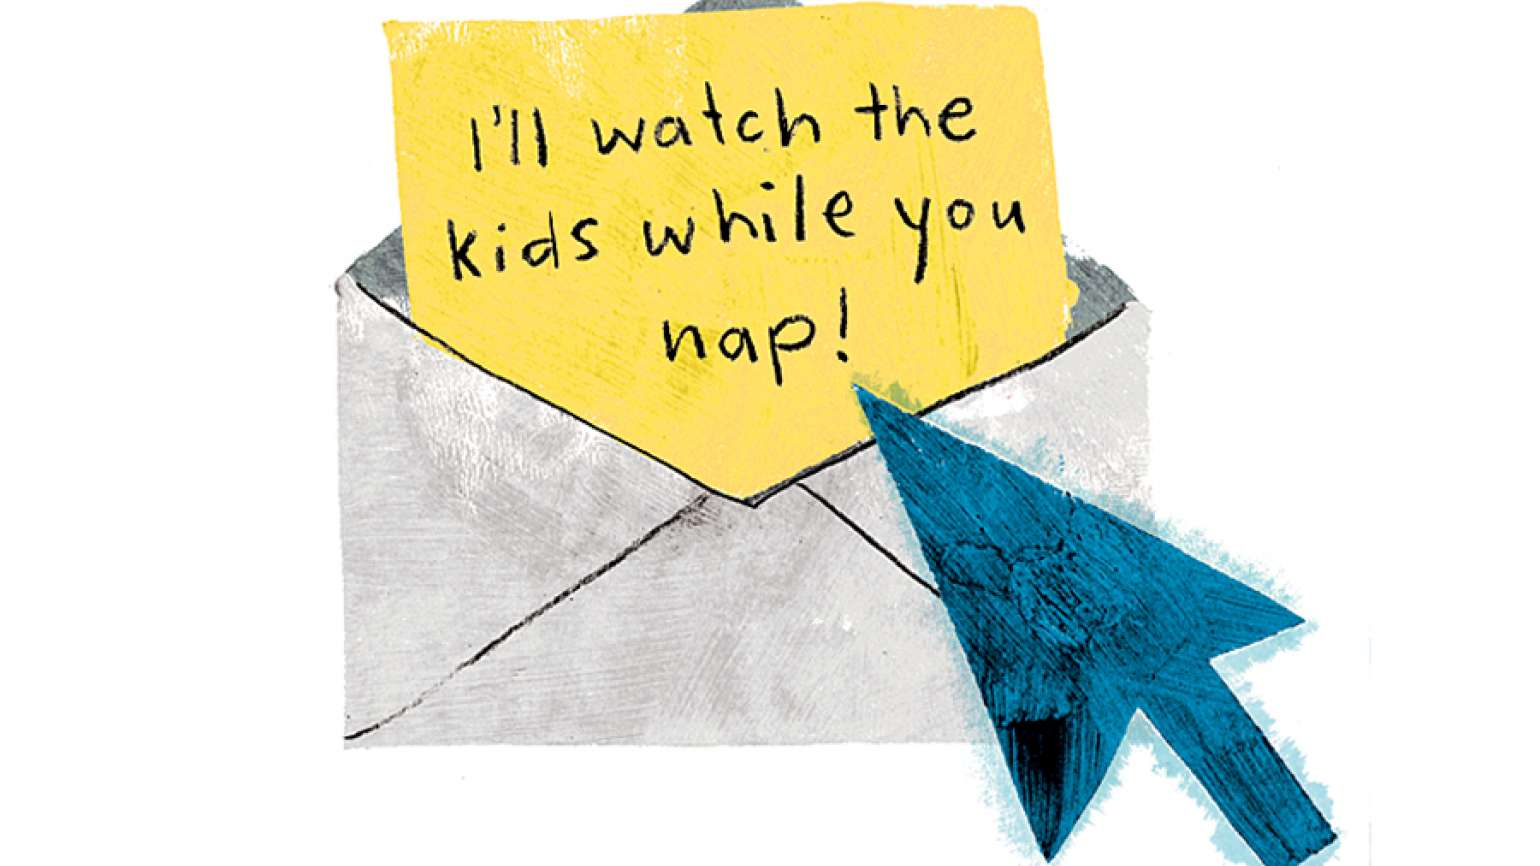 An artist's rendering of an envelope with a note in it